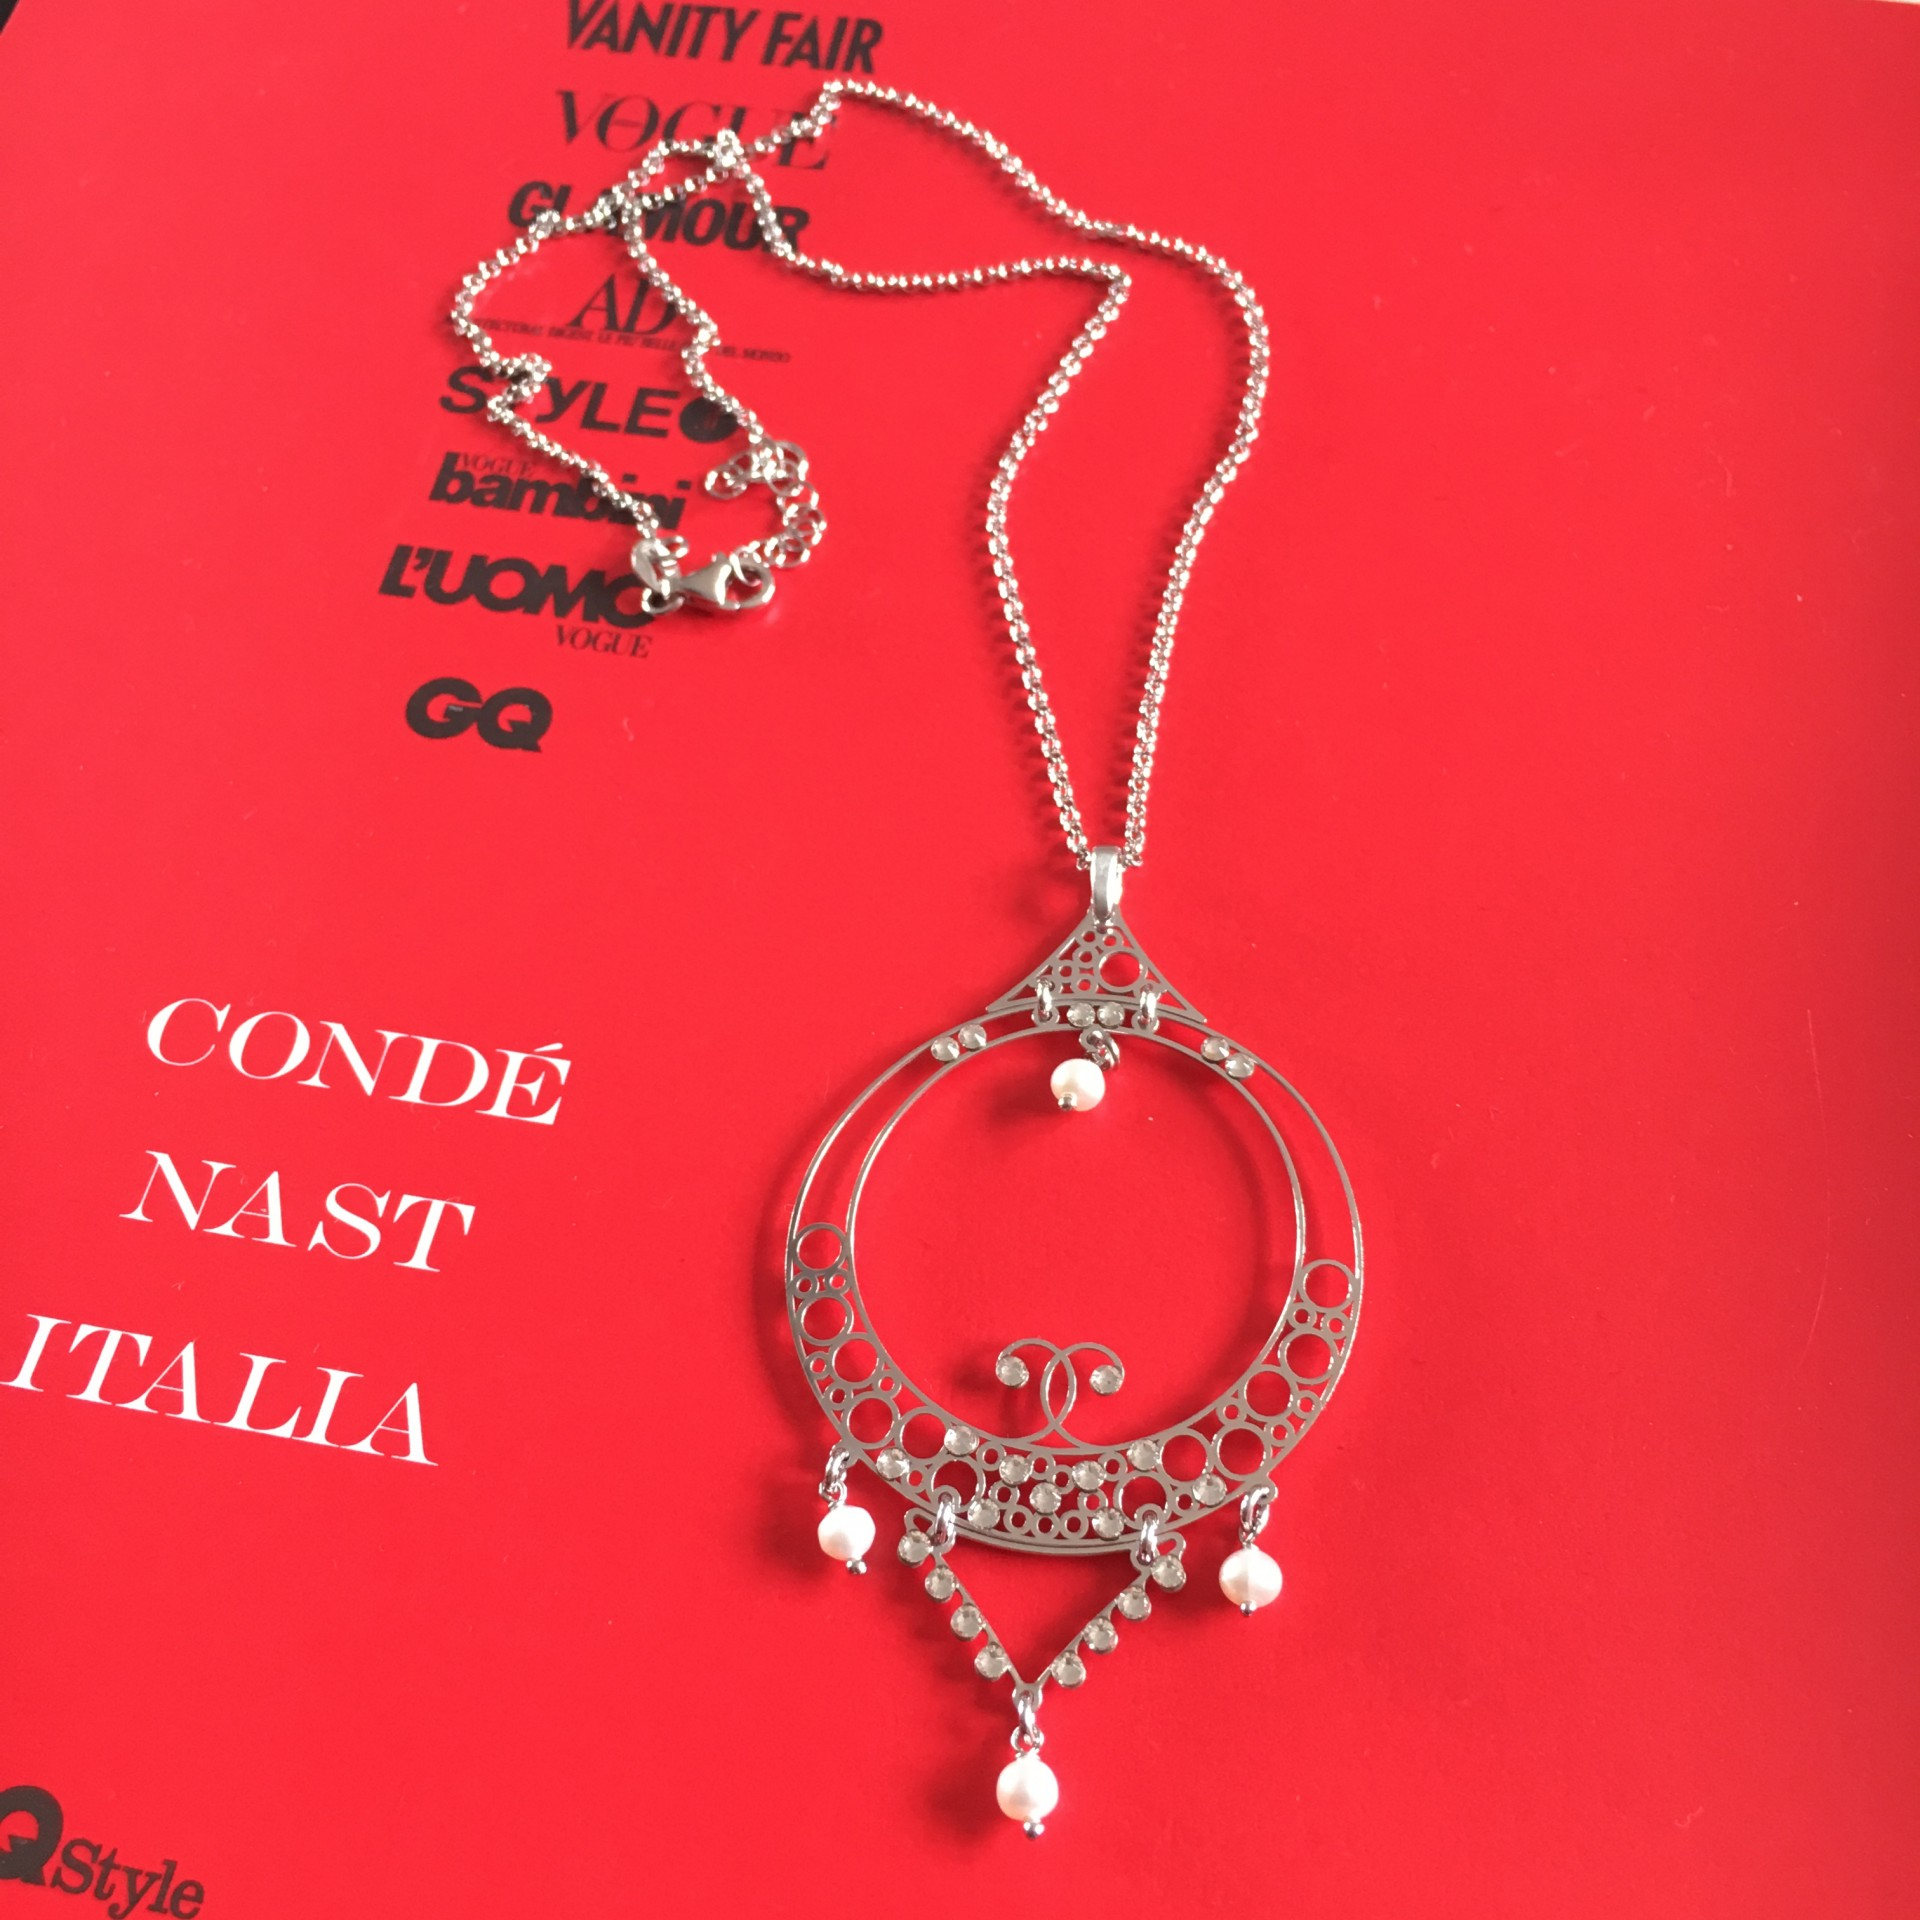 The Vintage II silver necklace